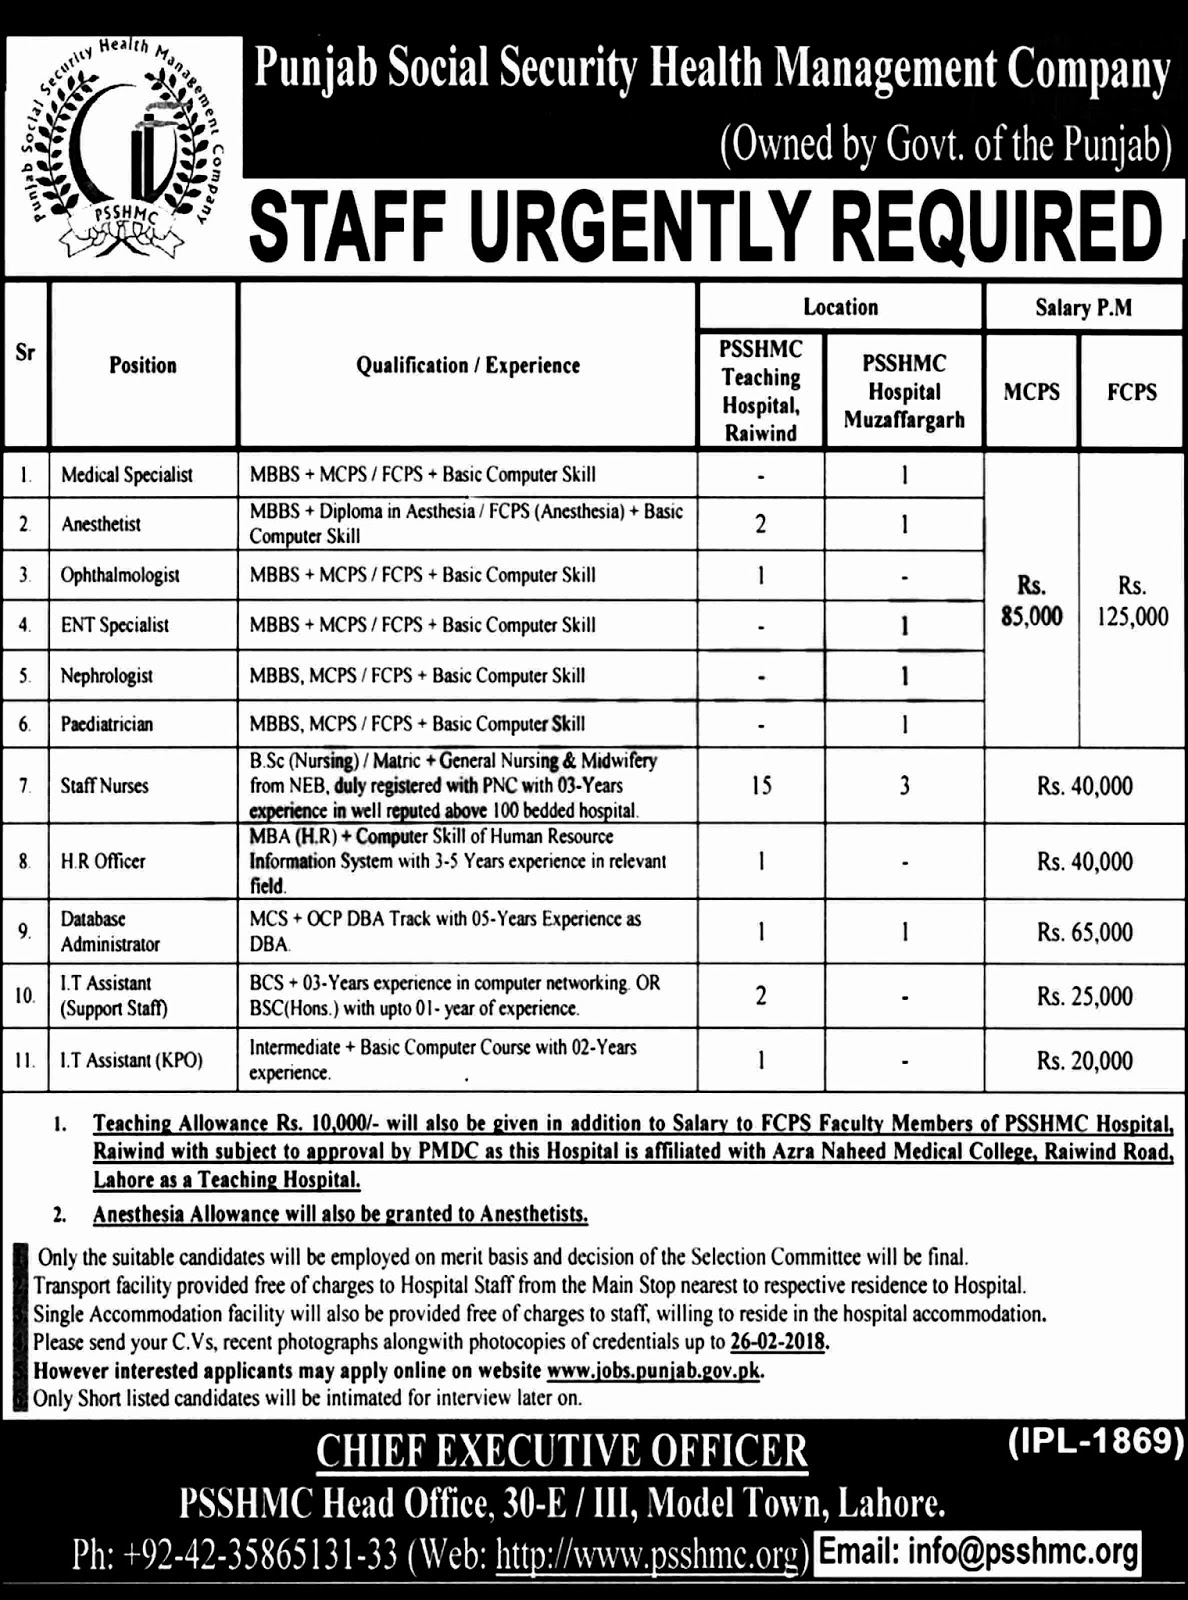 Jobs In Punjab Social Security Health Management Company (PSSHMC) Lahore 2018 for 32 Posts